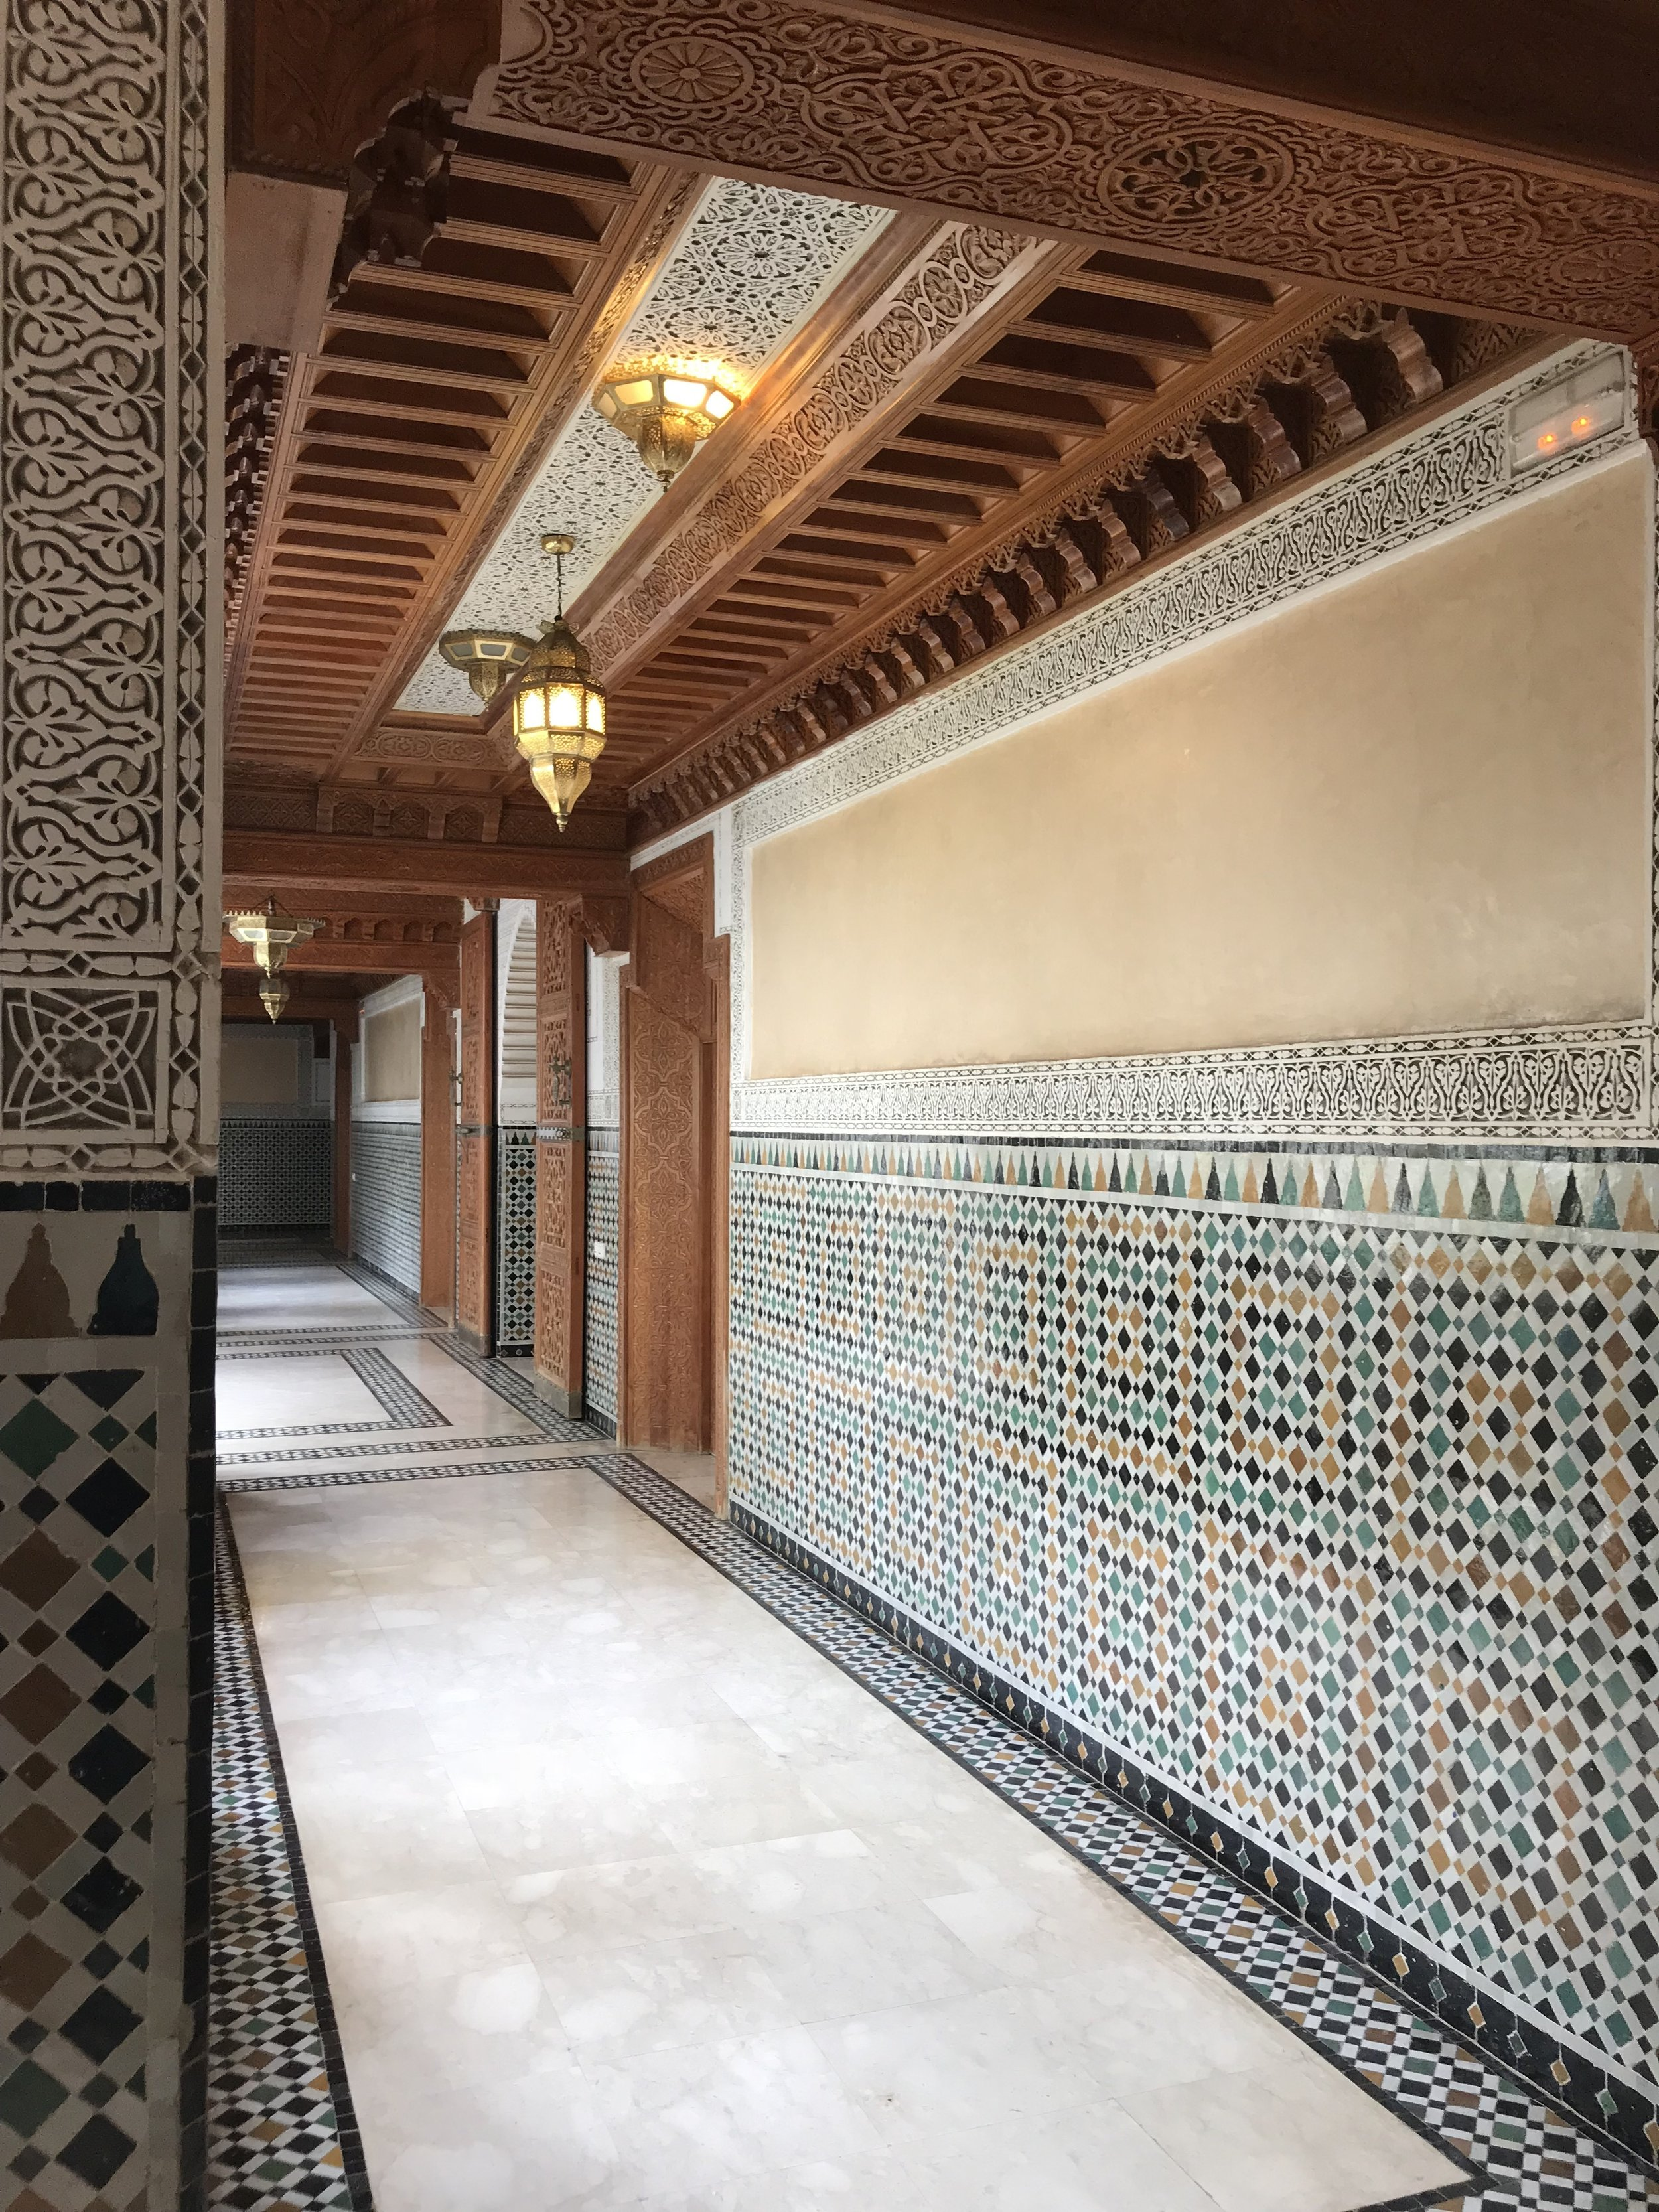 Mosaic Walkway, Islamic Center of Science in Rabat, Morocco  Photo provided by Gwendalyn Ryan '20